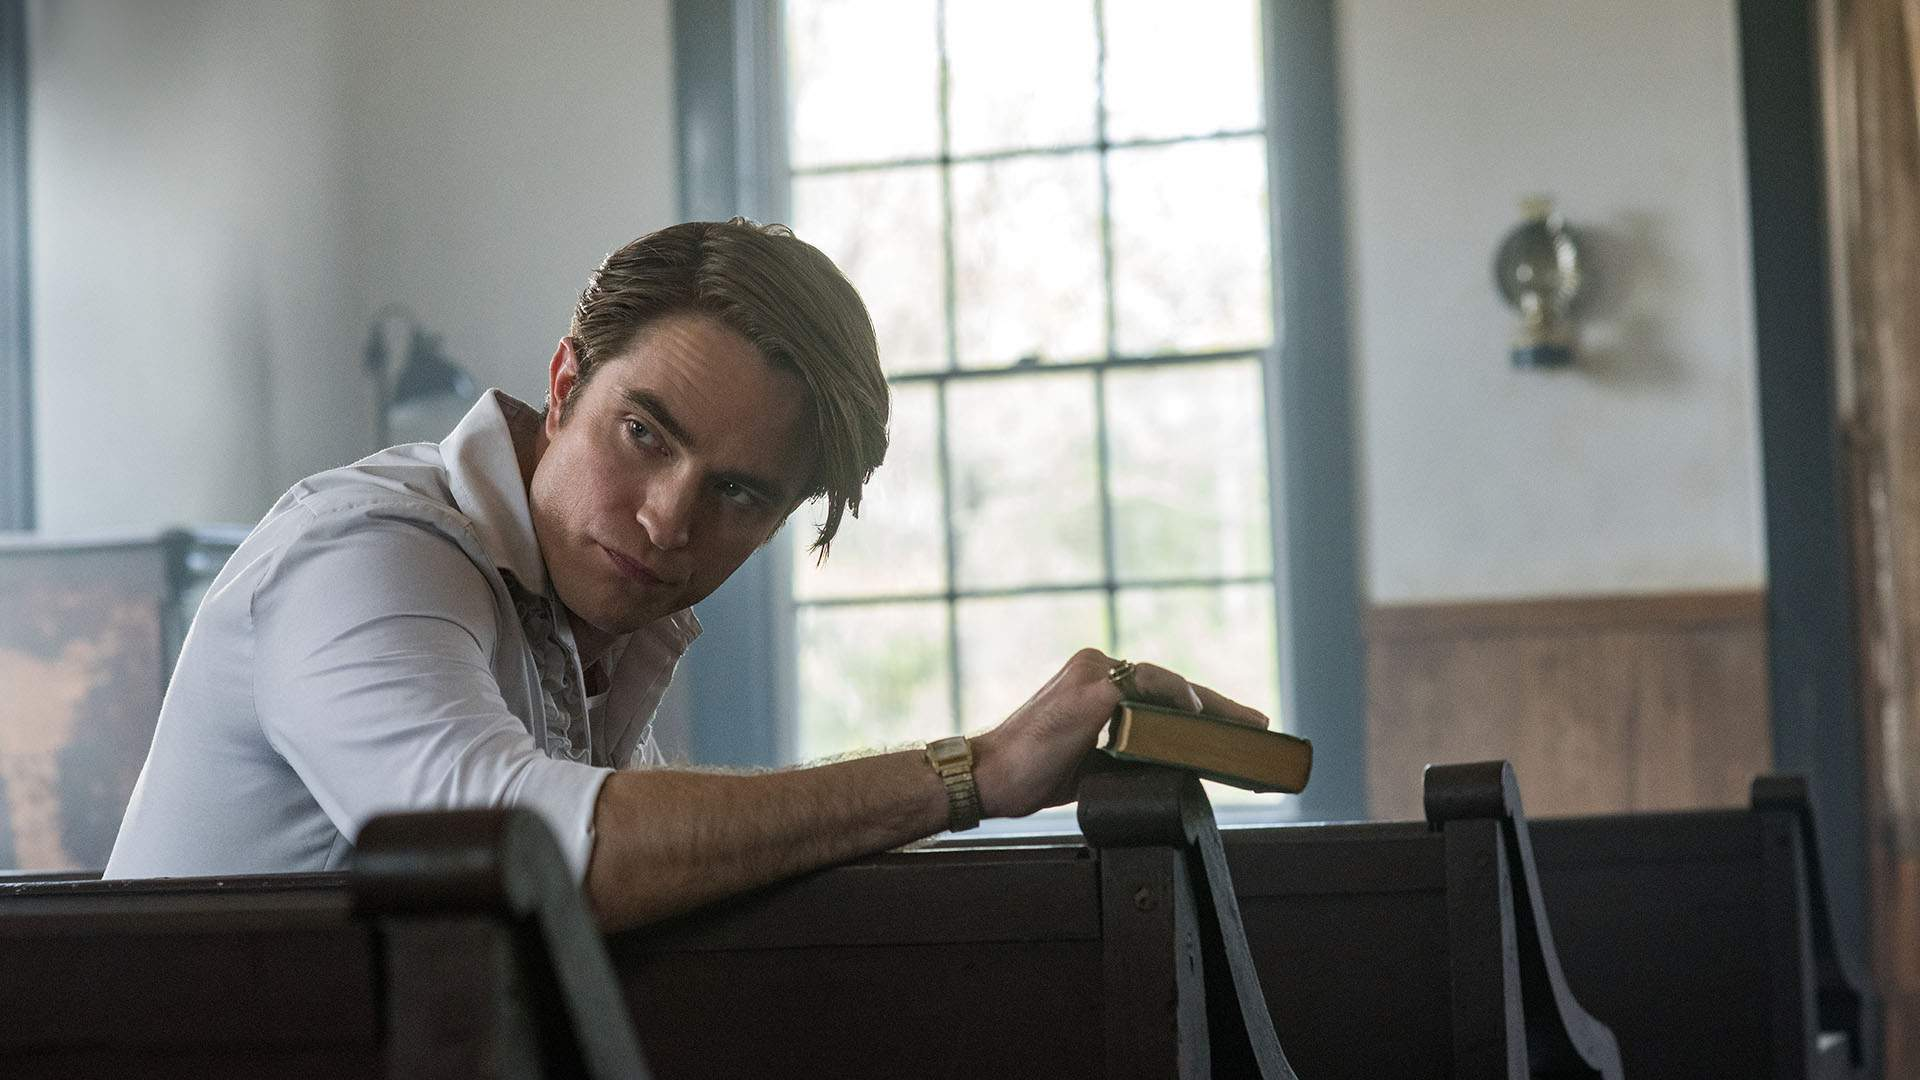 Robert Pattinson Is a Sinister Preacher in the Trailer for New Netflix Thriller 'The Devil All the Time'